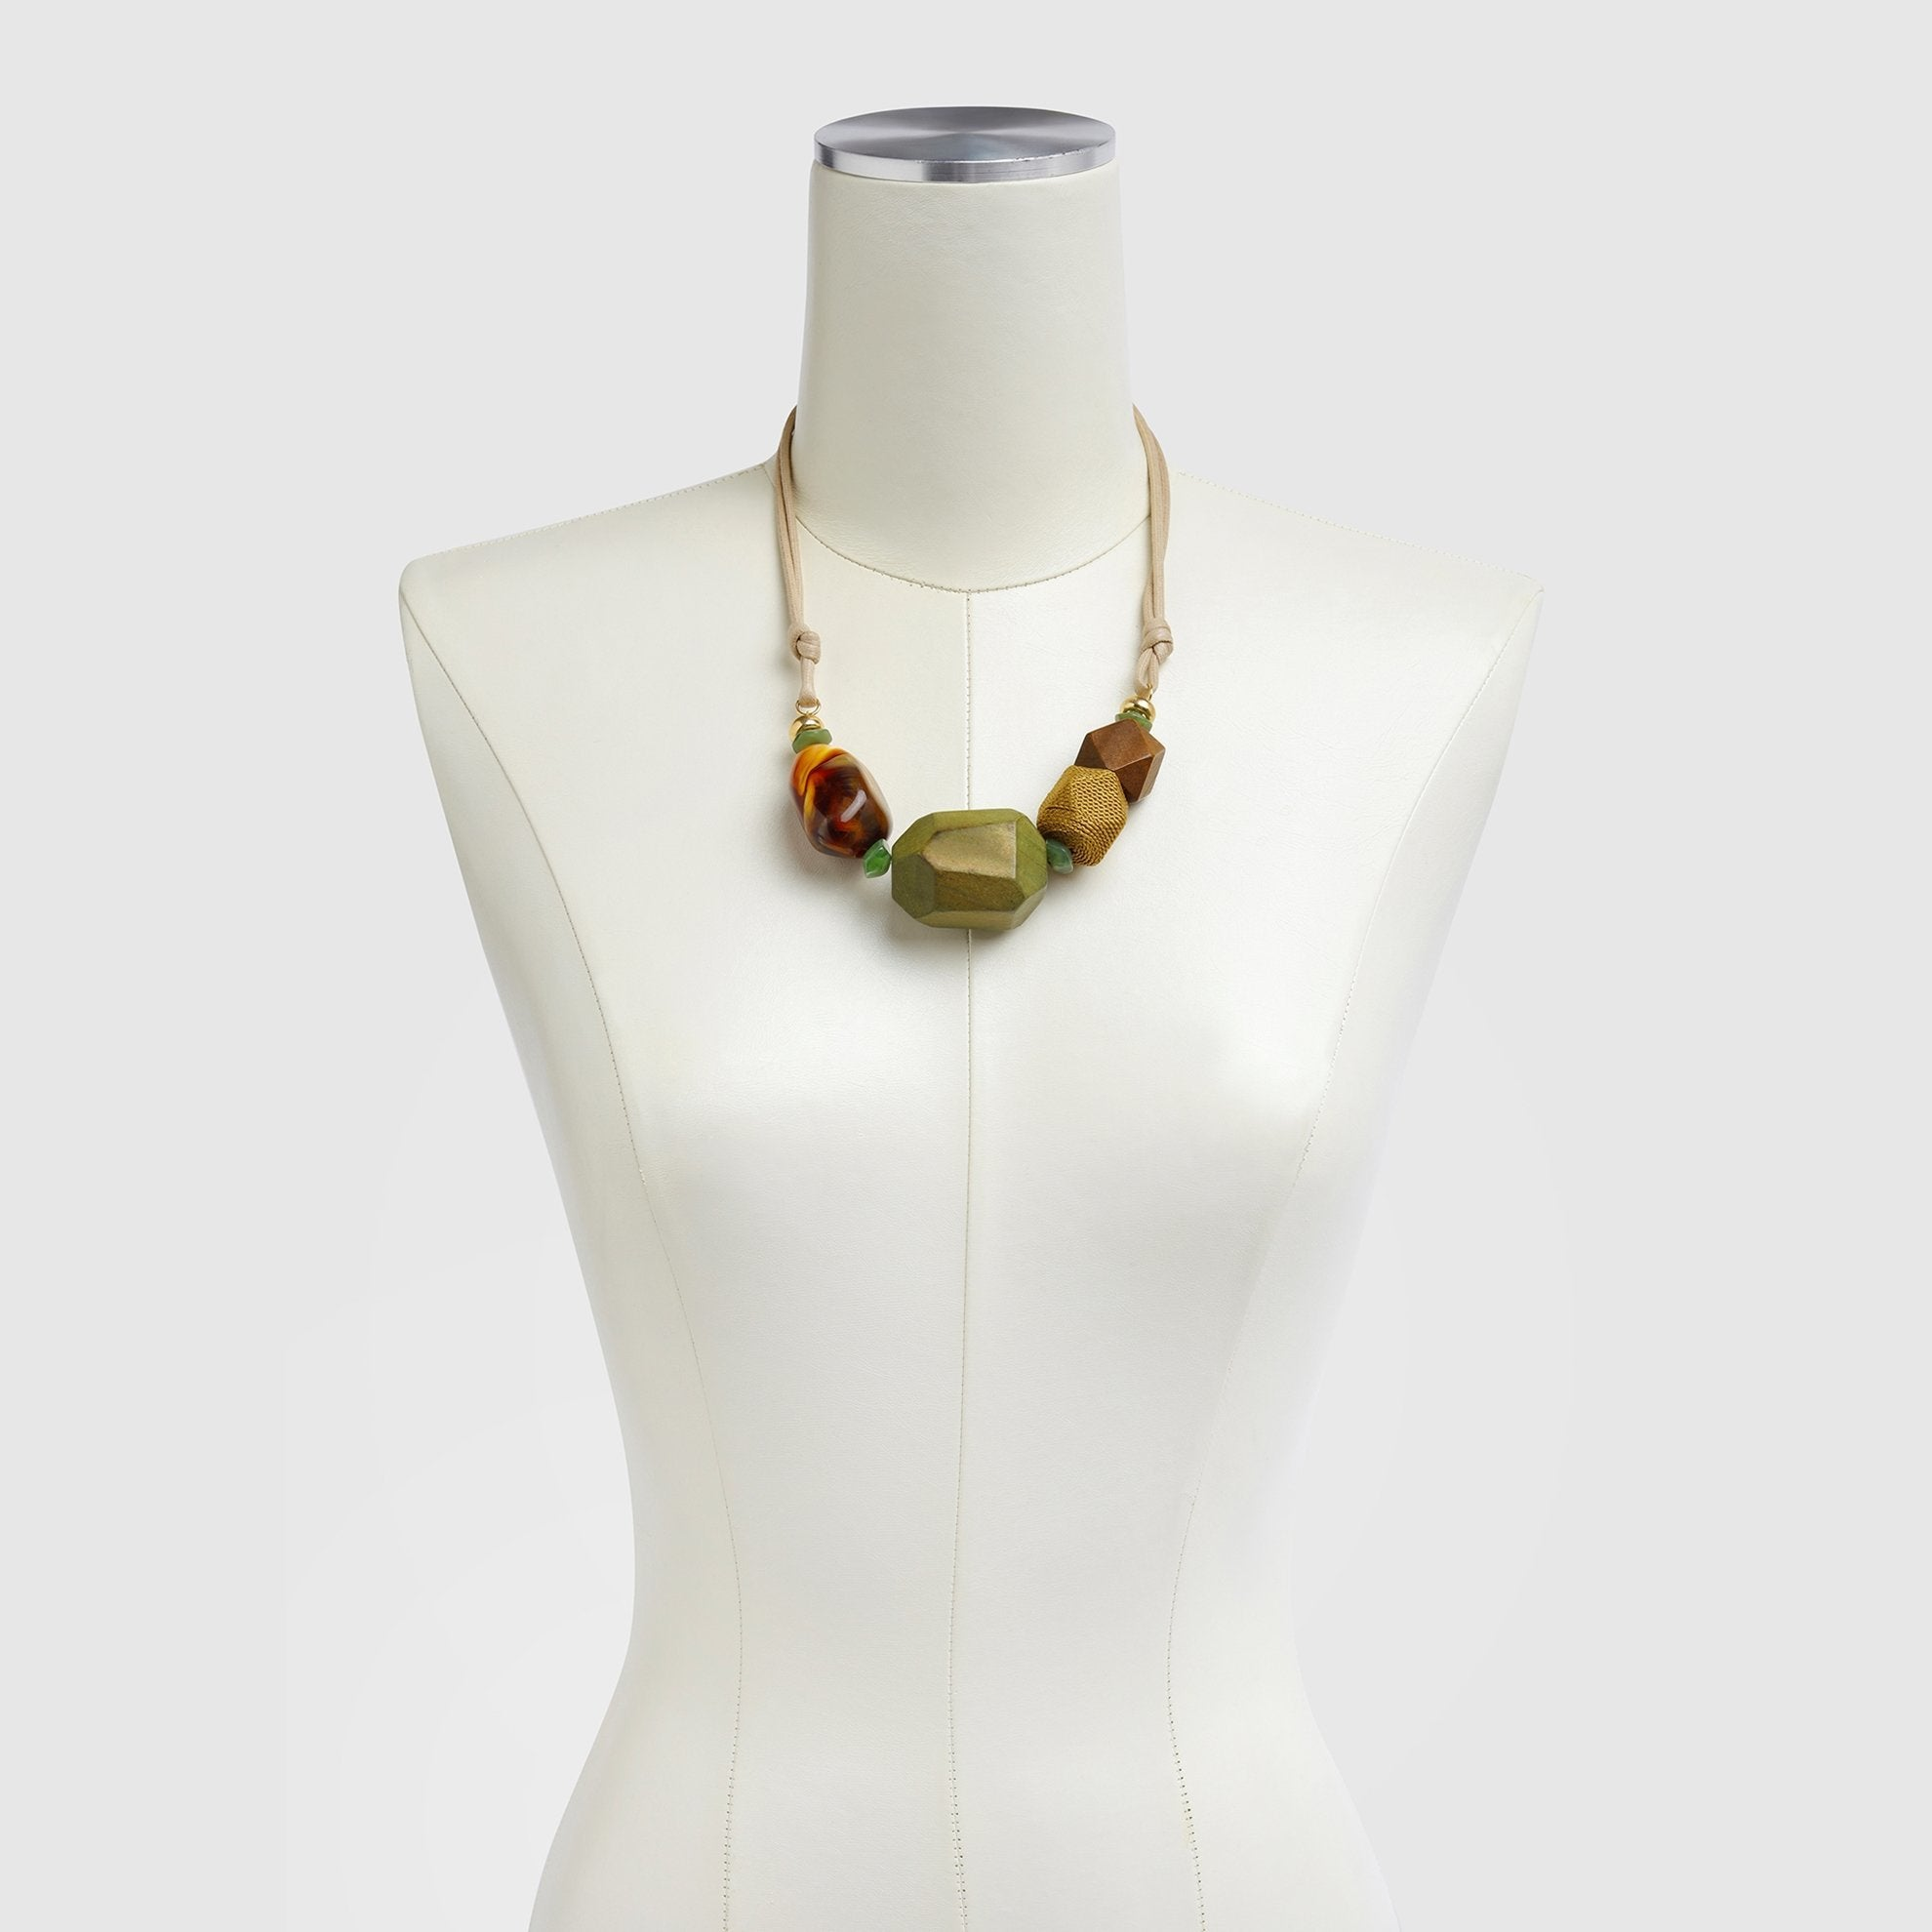 Geometric Shape Necklace on Dress Form